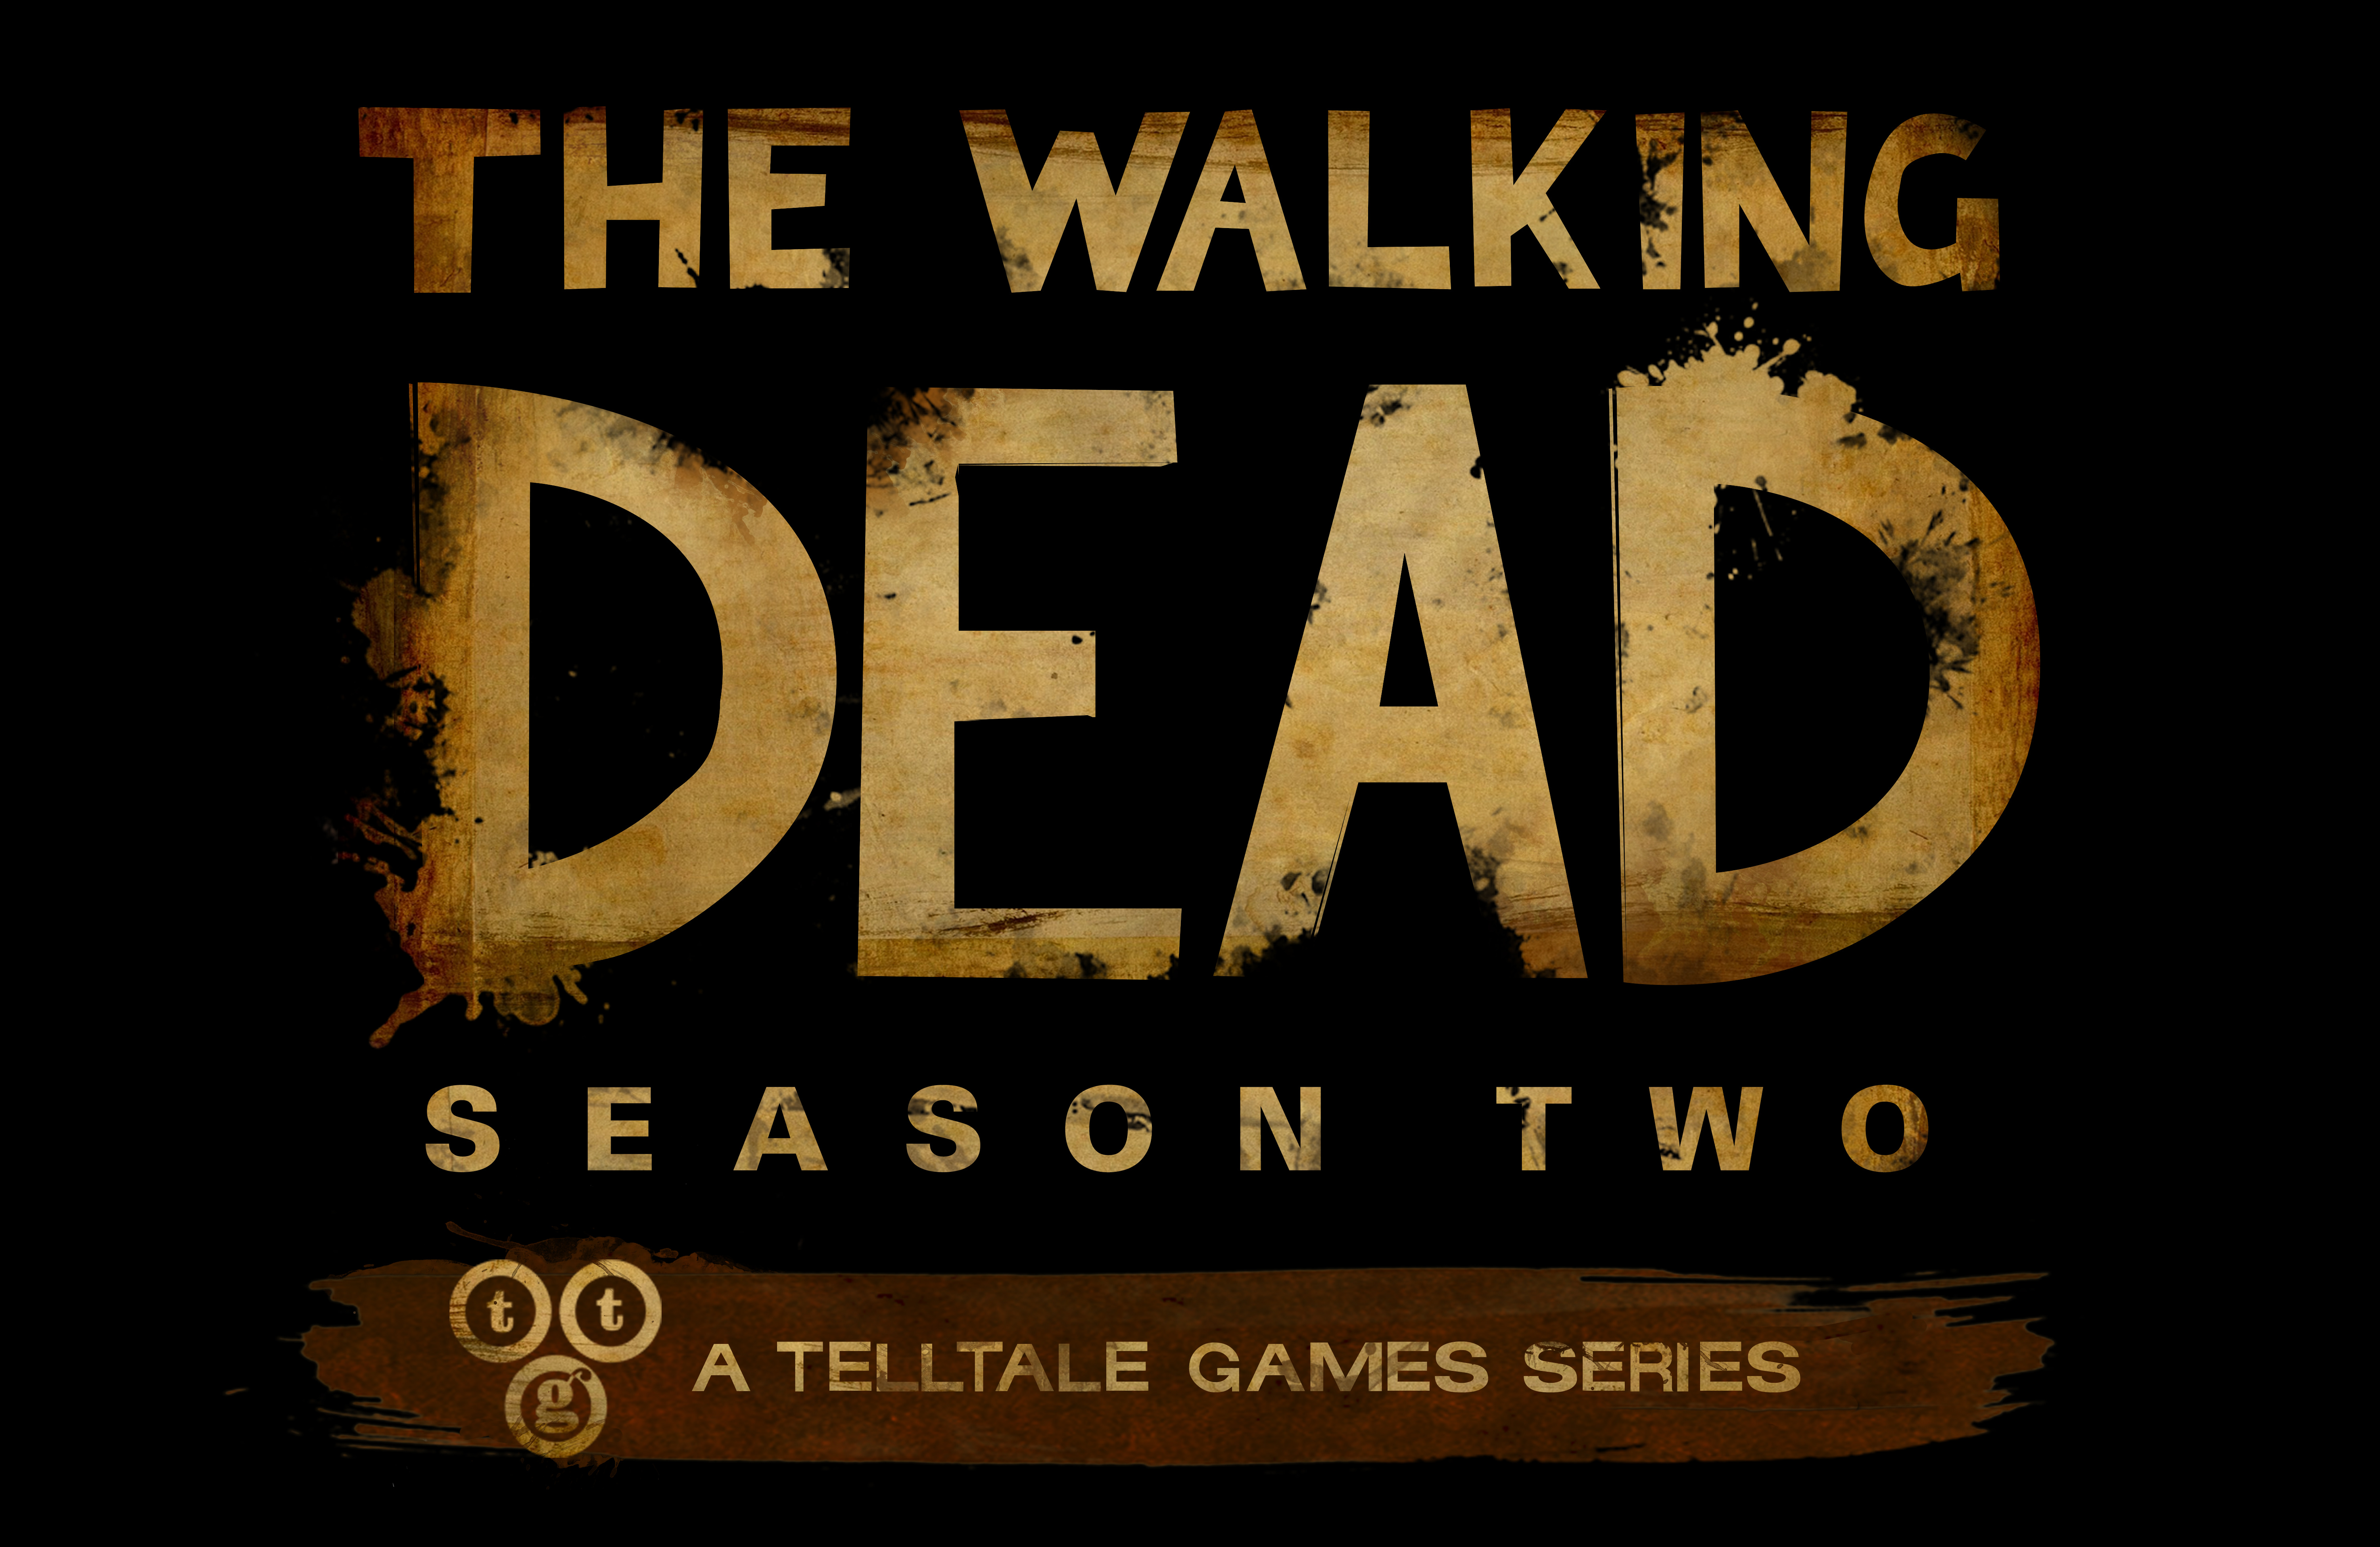 The Walking Dead Season 2 Episode 1 All That Remains